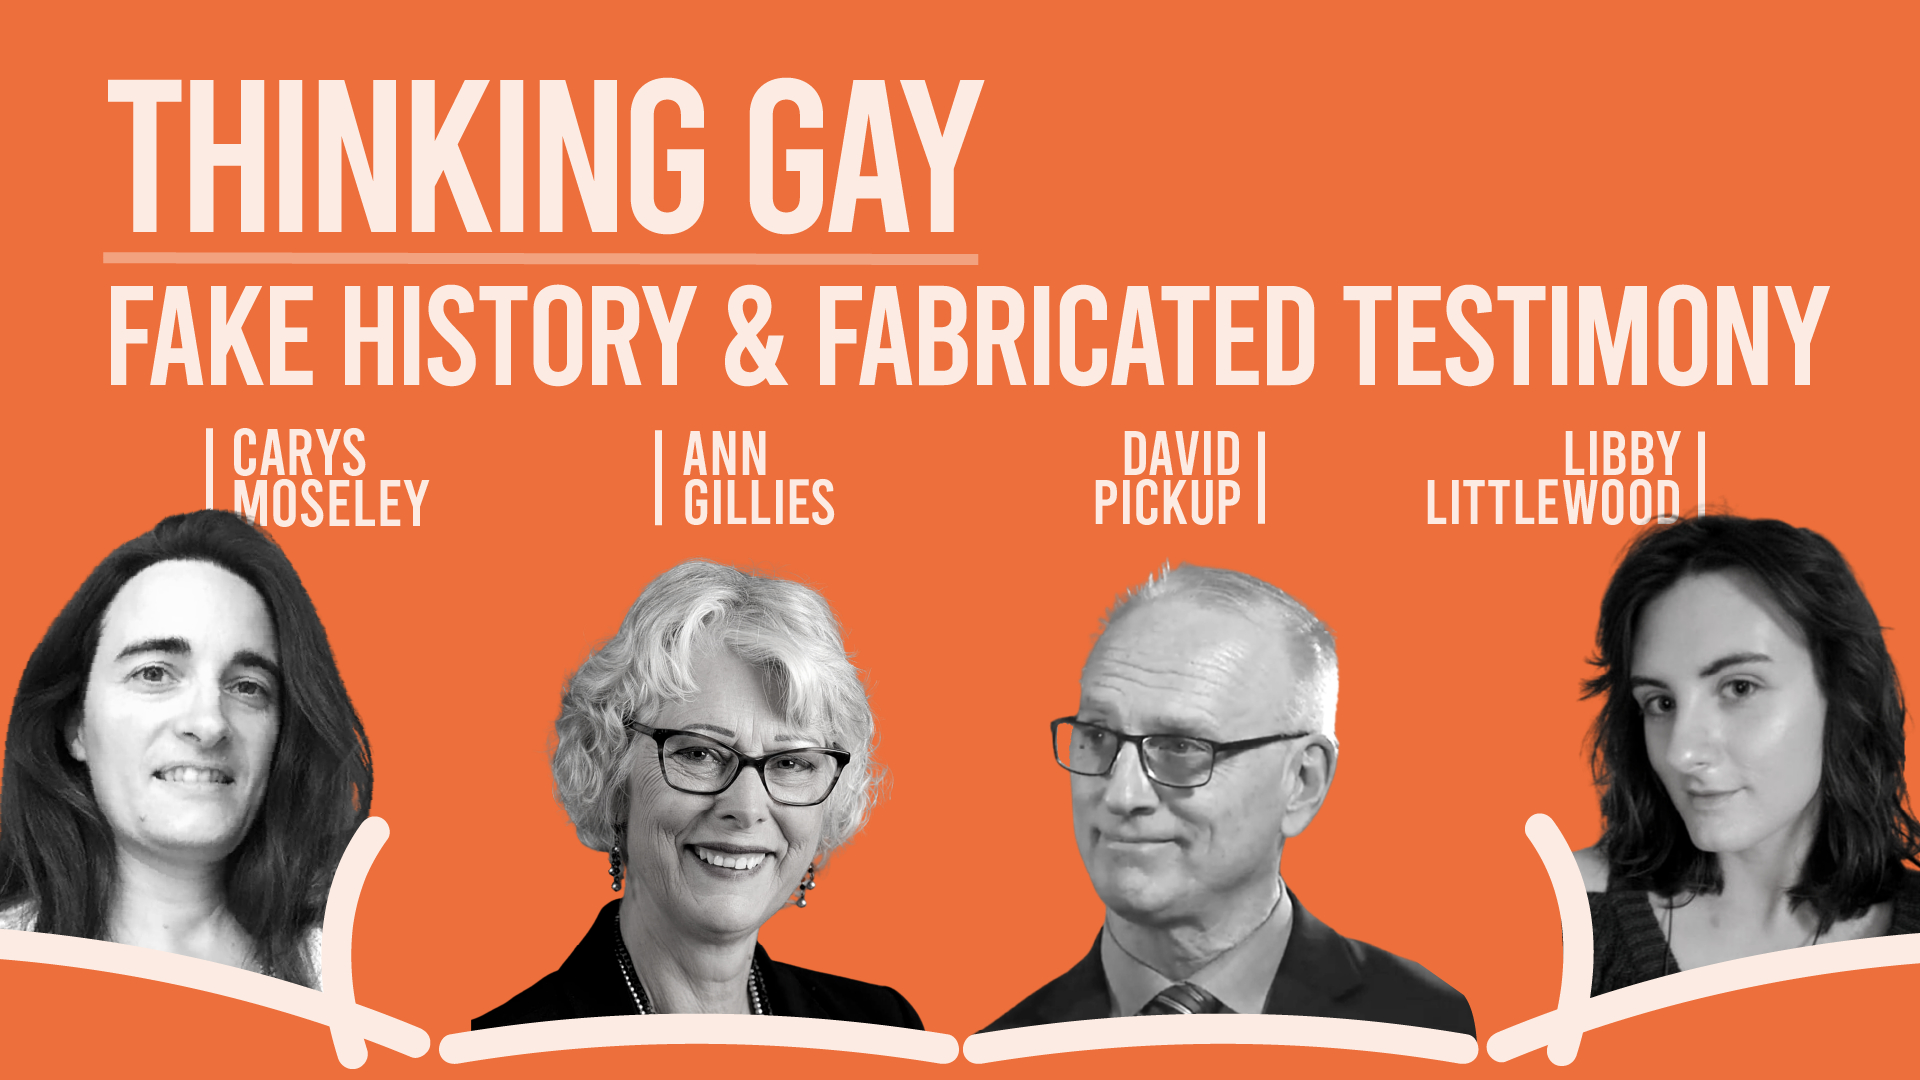 Thinking Gay   IFTCC Live      Series 2 Episode 2    Fake History and Fabricated Testimony